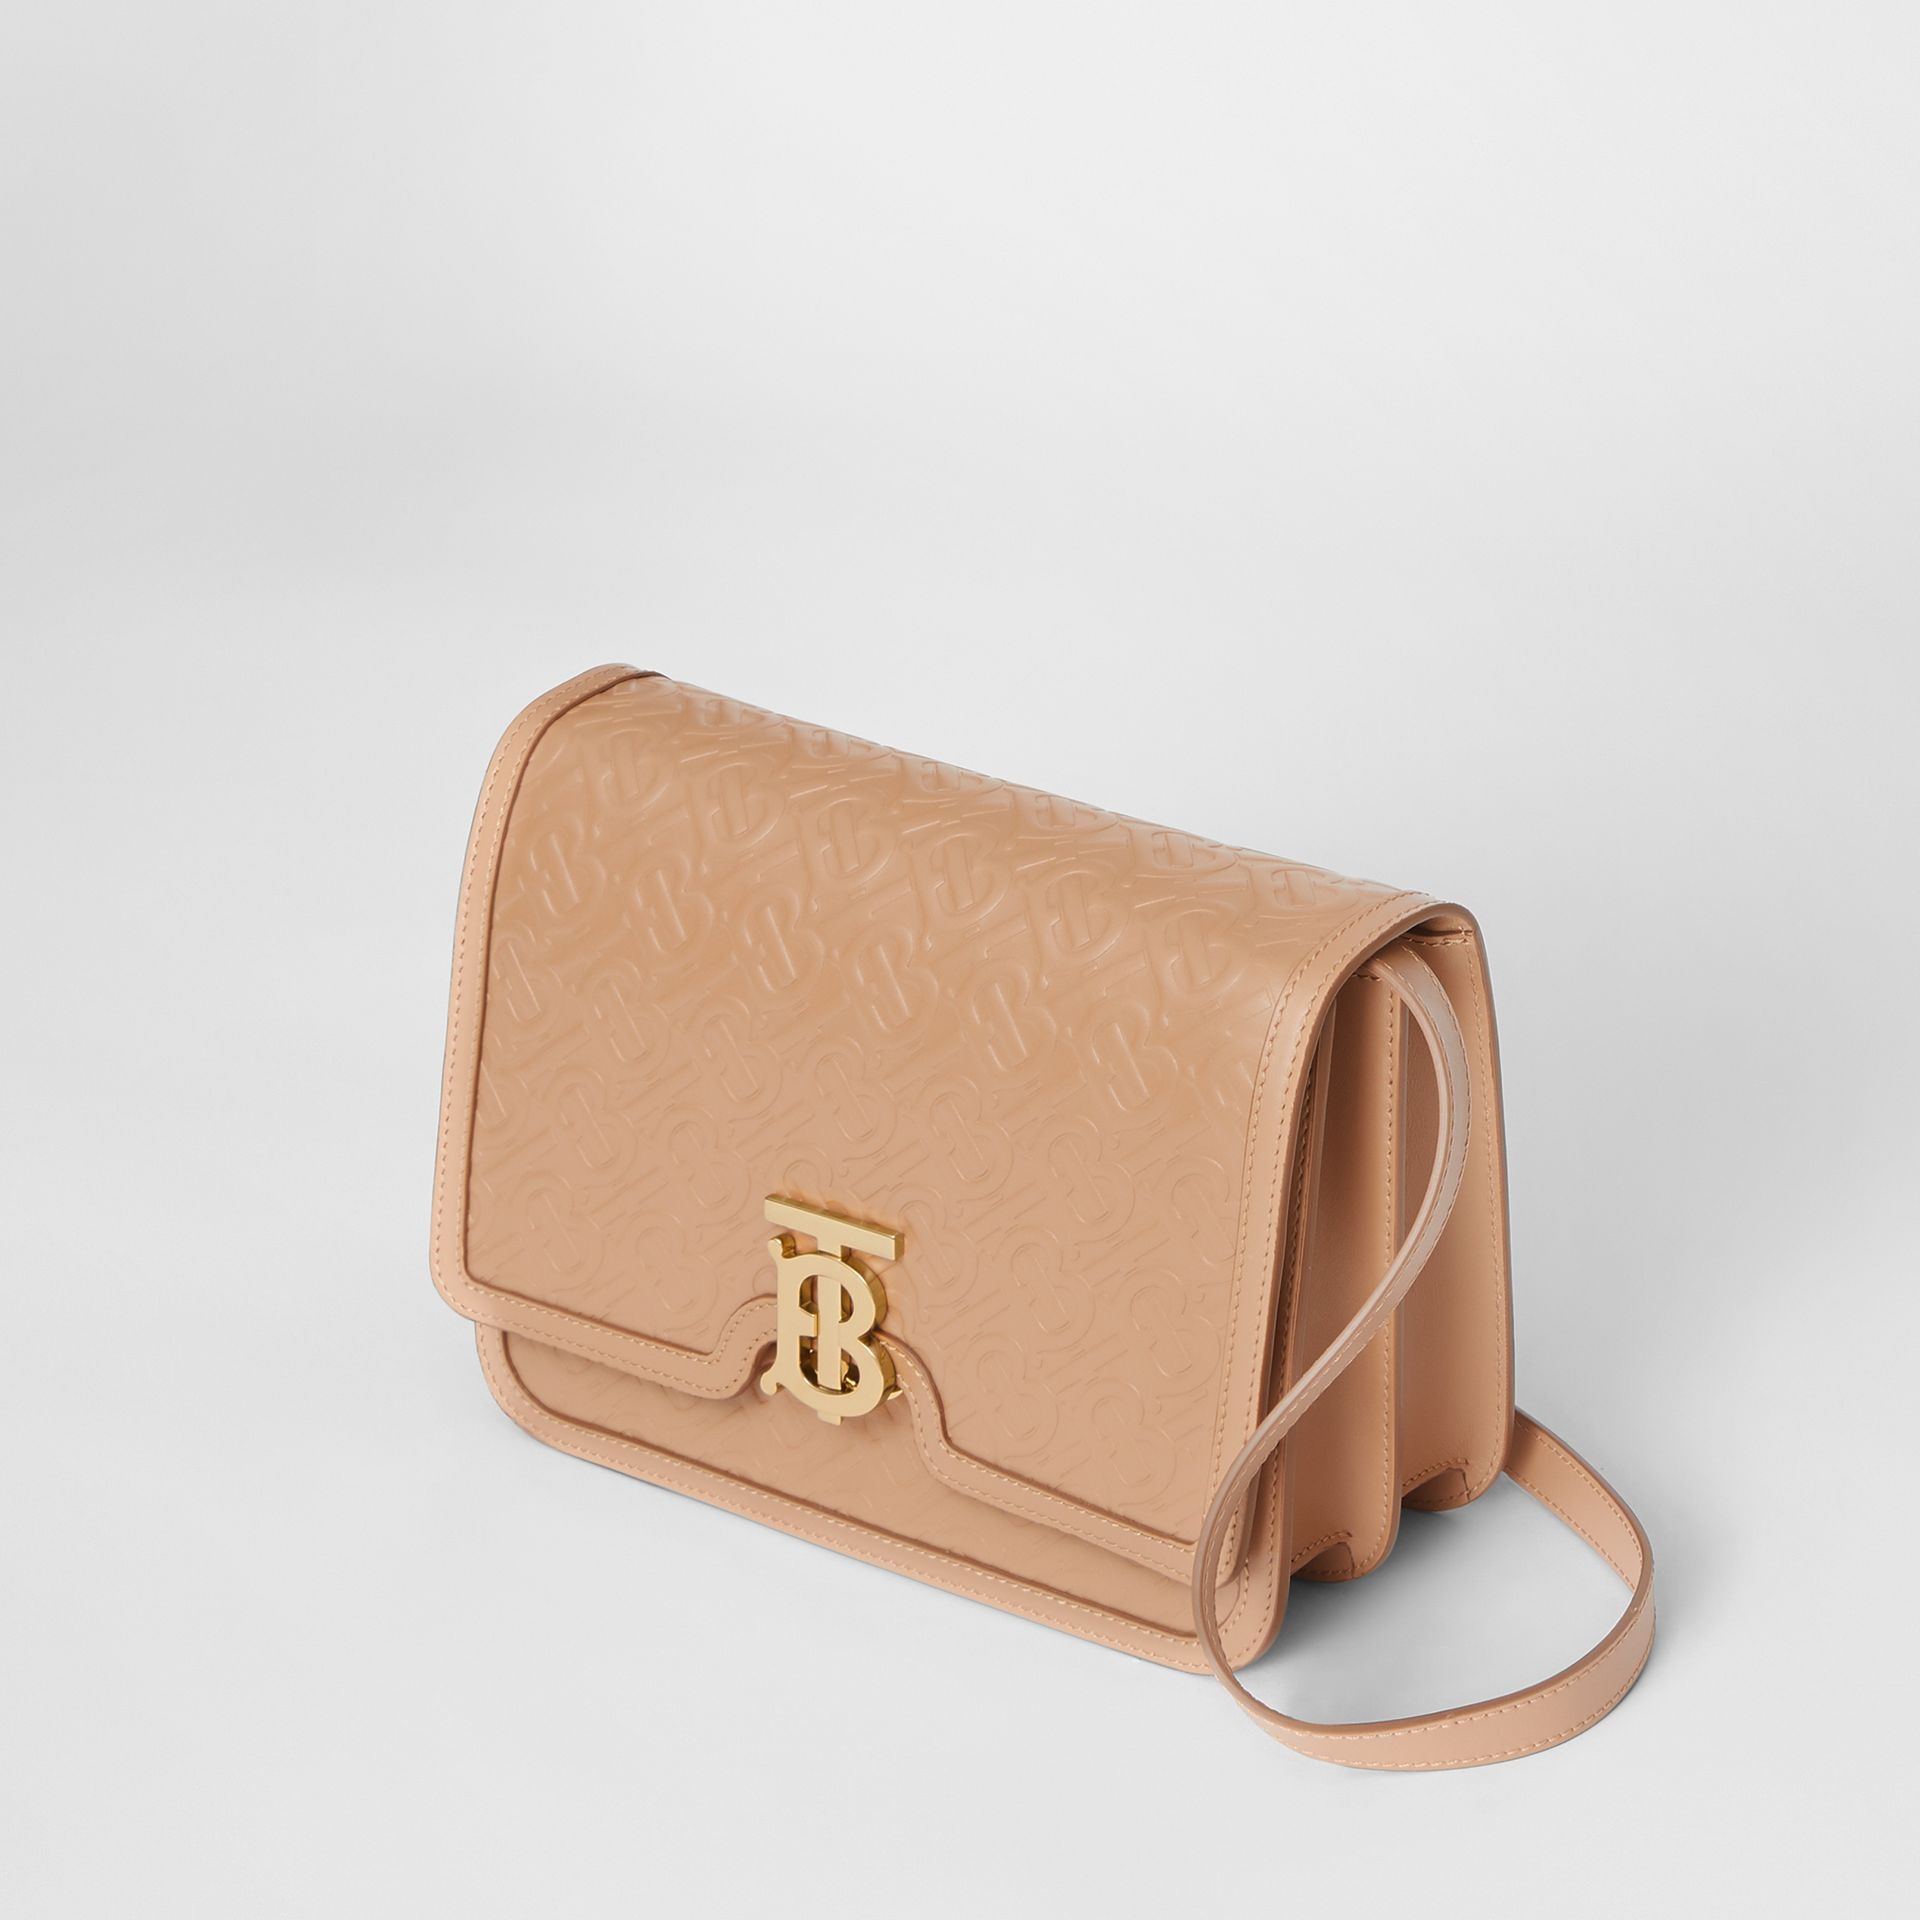 Medium Monogram Leather TB Bag in Light Camel - Women | Burberry United Kingdom - gallery image 3